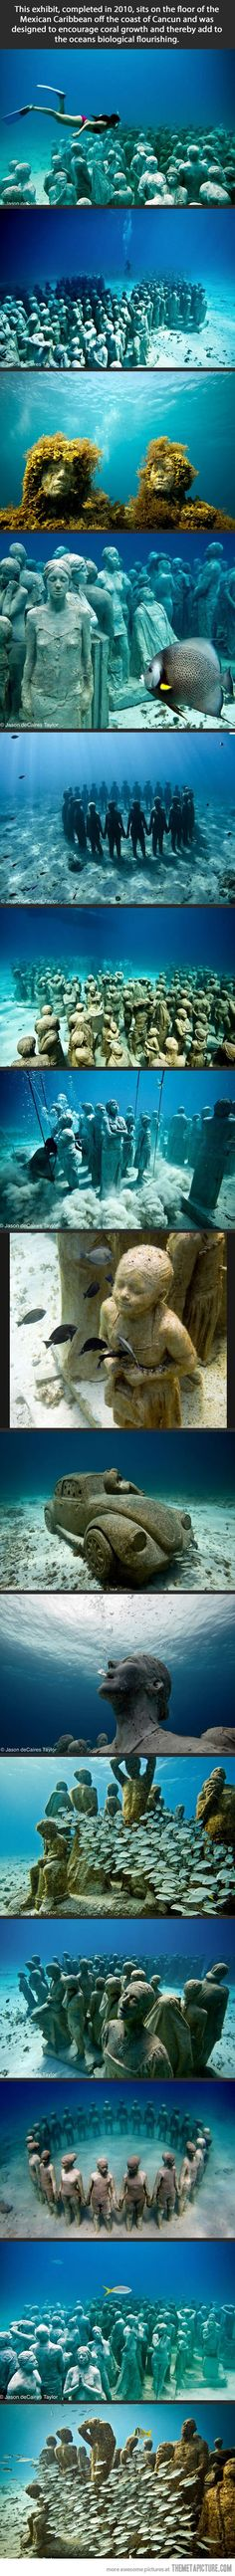 "Amazing underwater museum… the only problem will be thousands of years from now when someone tries to identify the original purpose of said ""amazing underwater museum""..."